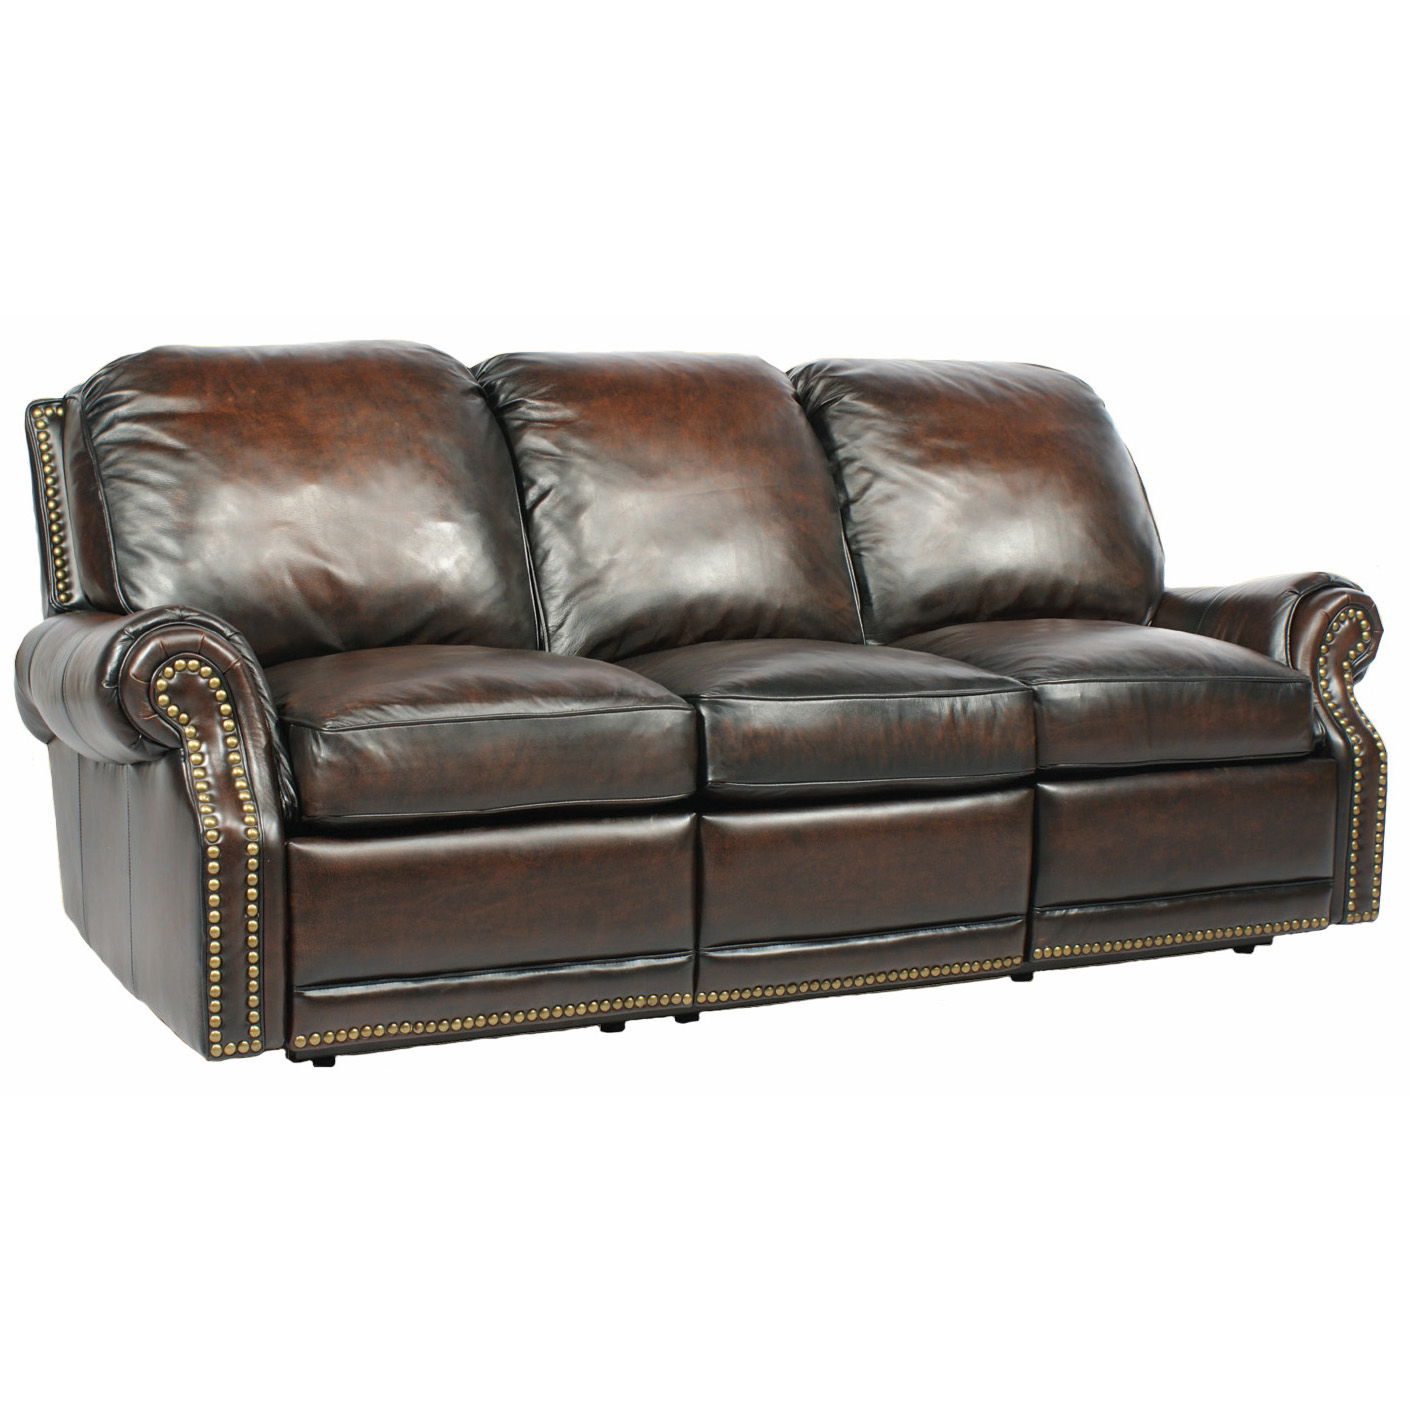 leather sofa cleaning kit retro bed sydney barcalounger premier ii 2 seat loveseat